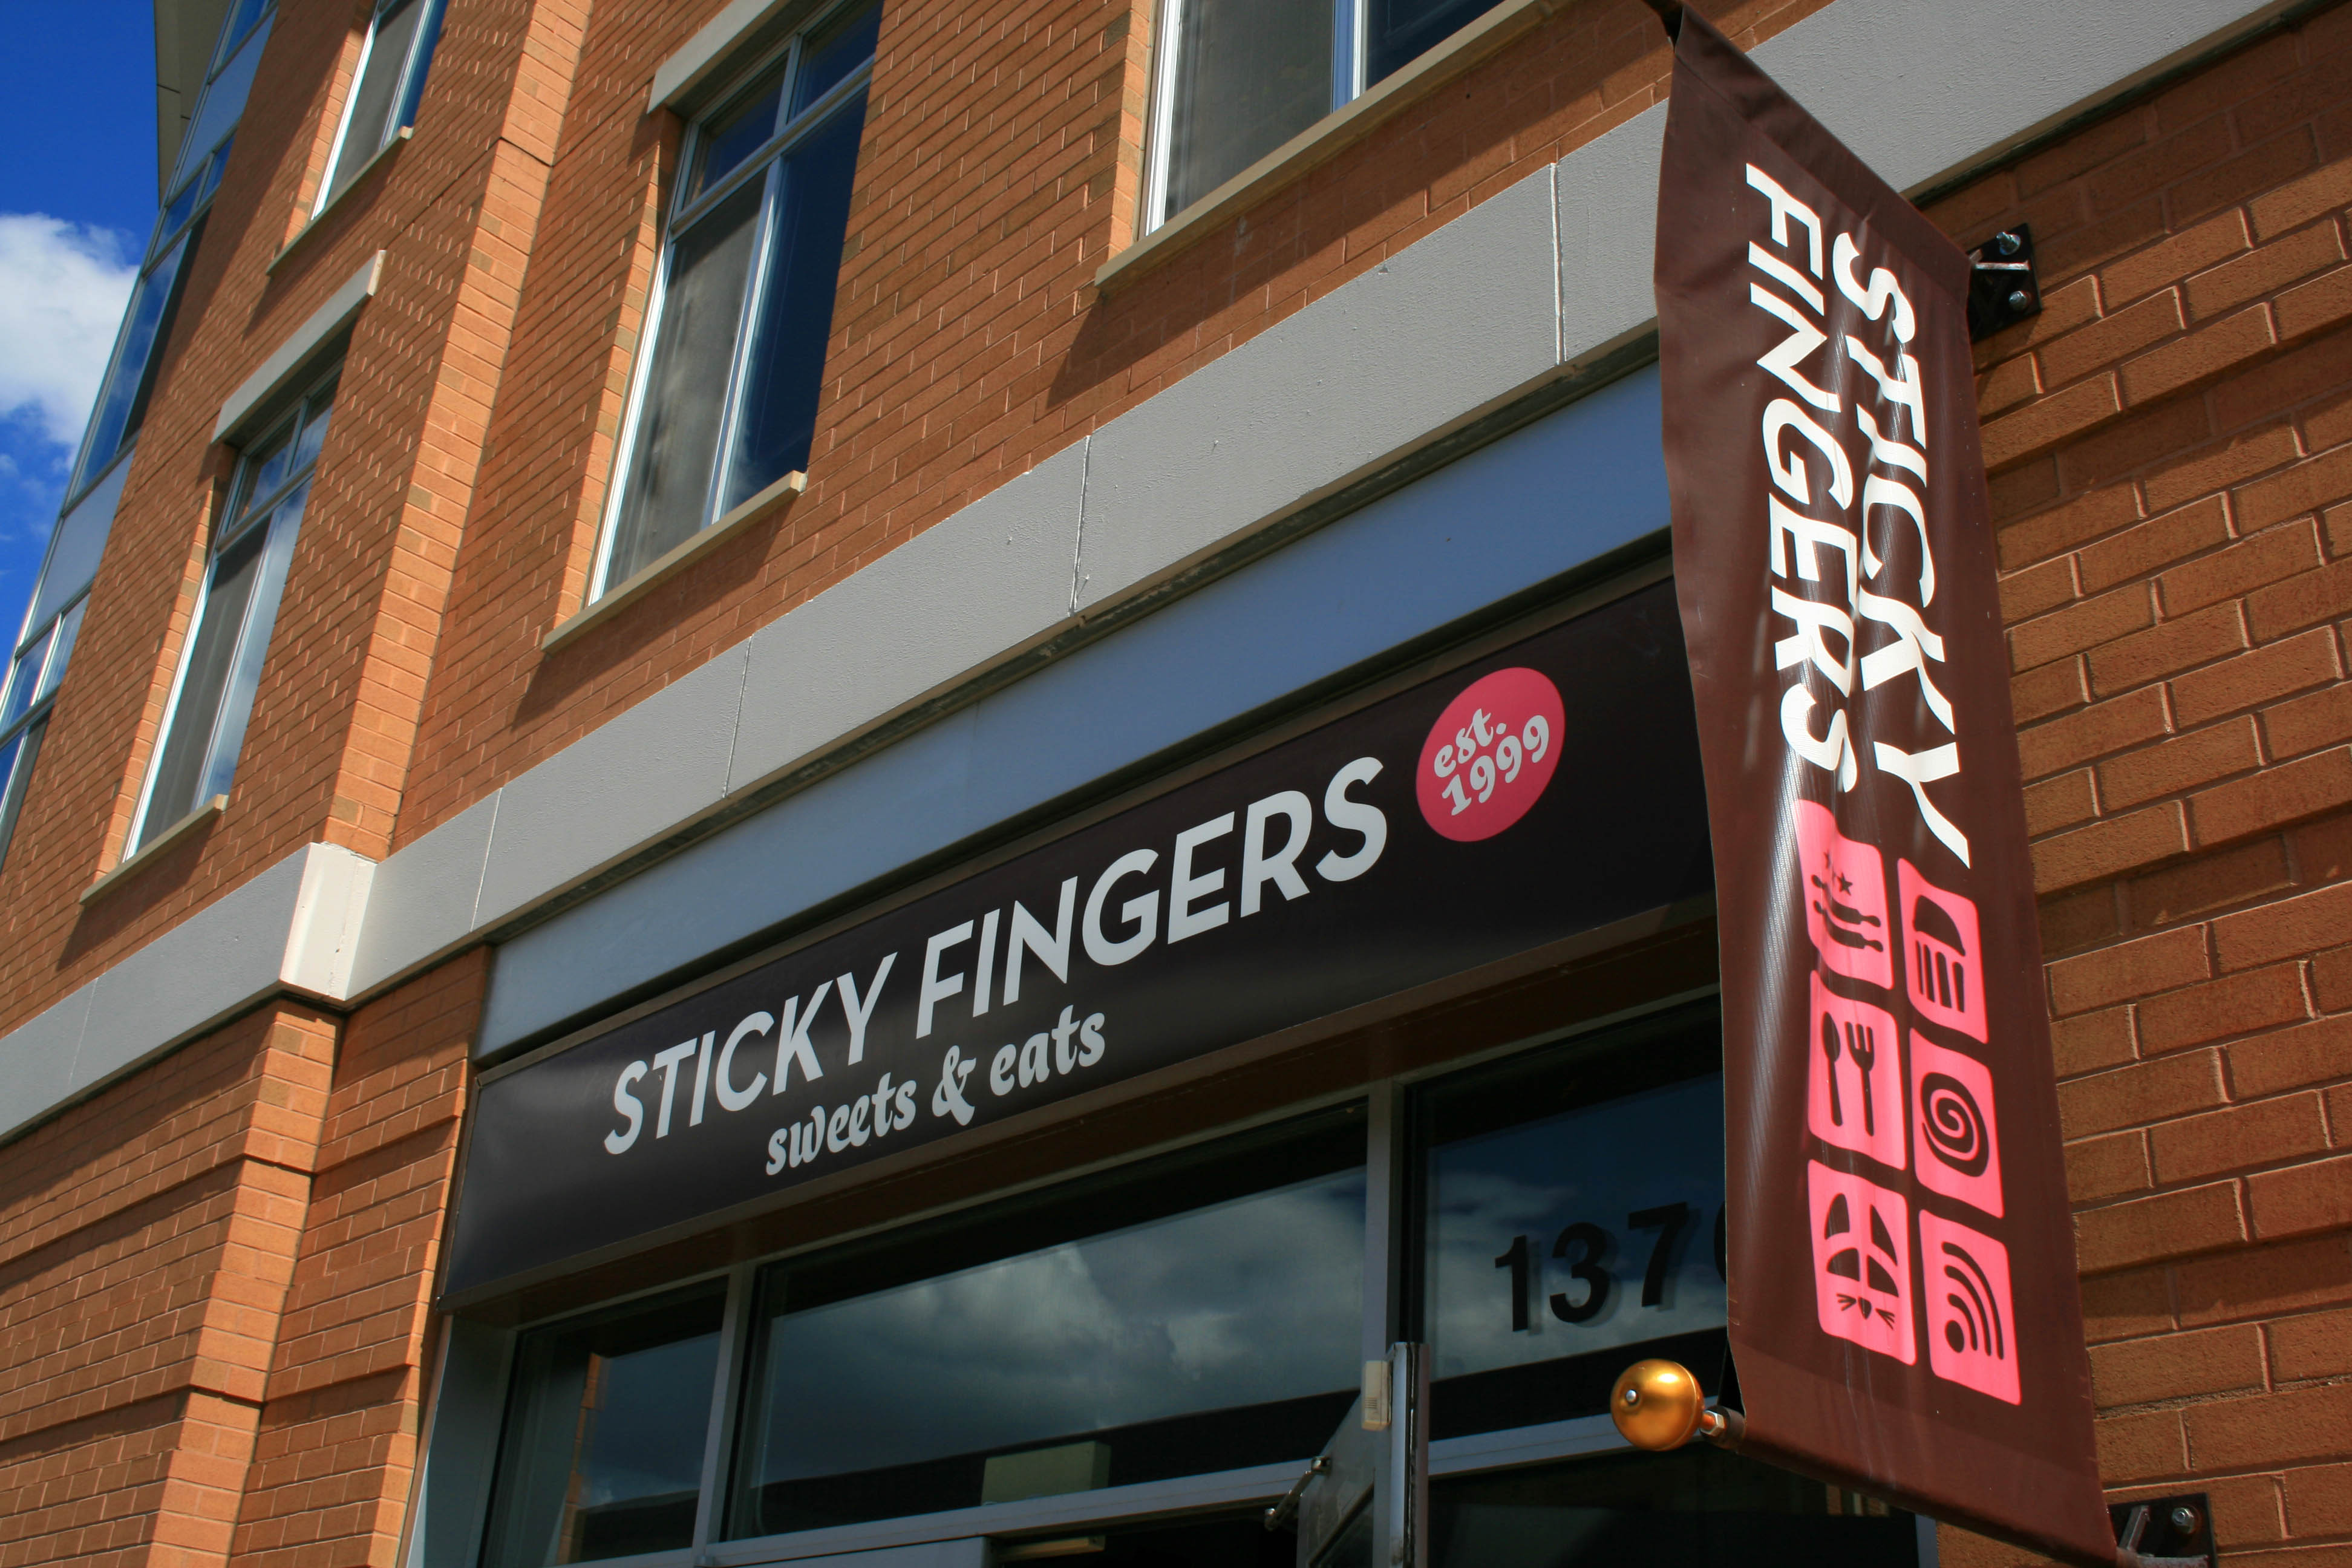 Sticky Fingers Bakery